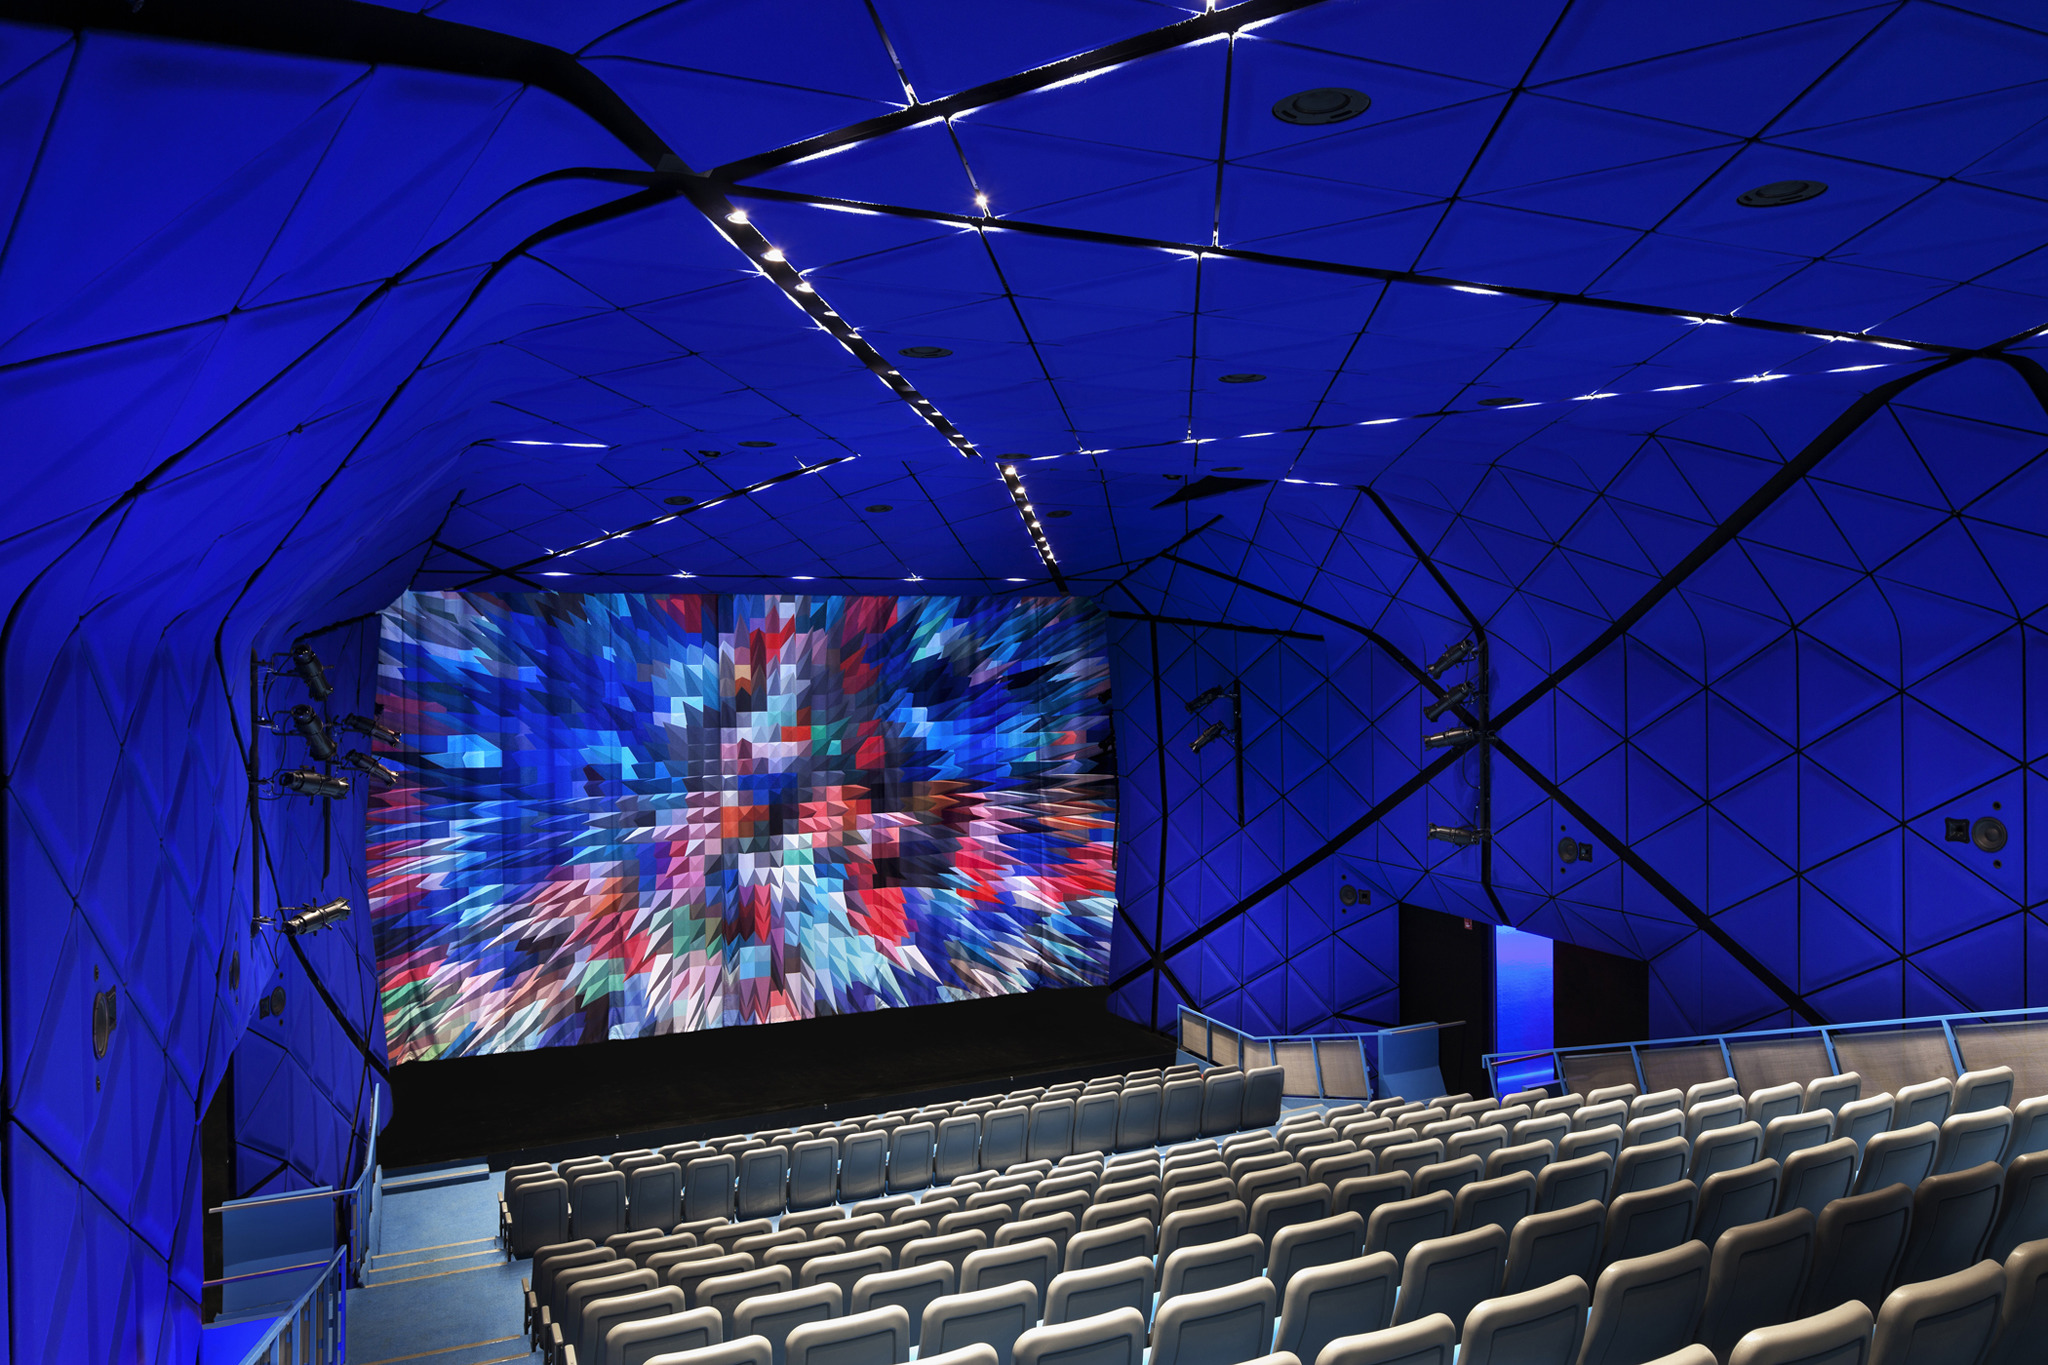 Best for film fanatics: Museum of the Moving Image